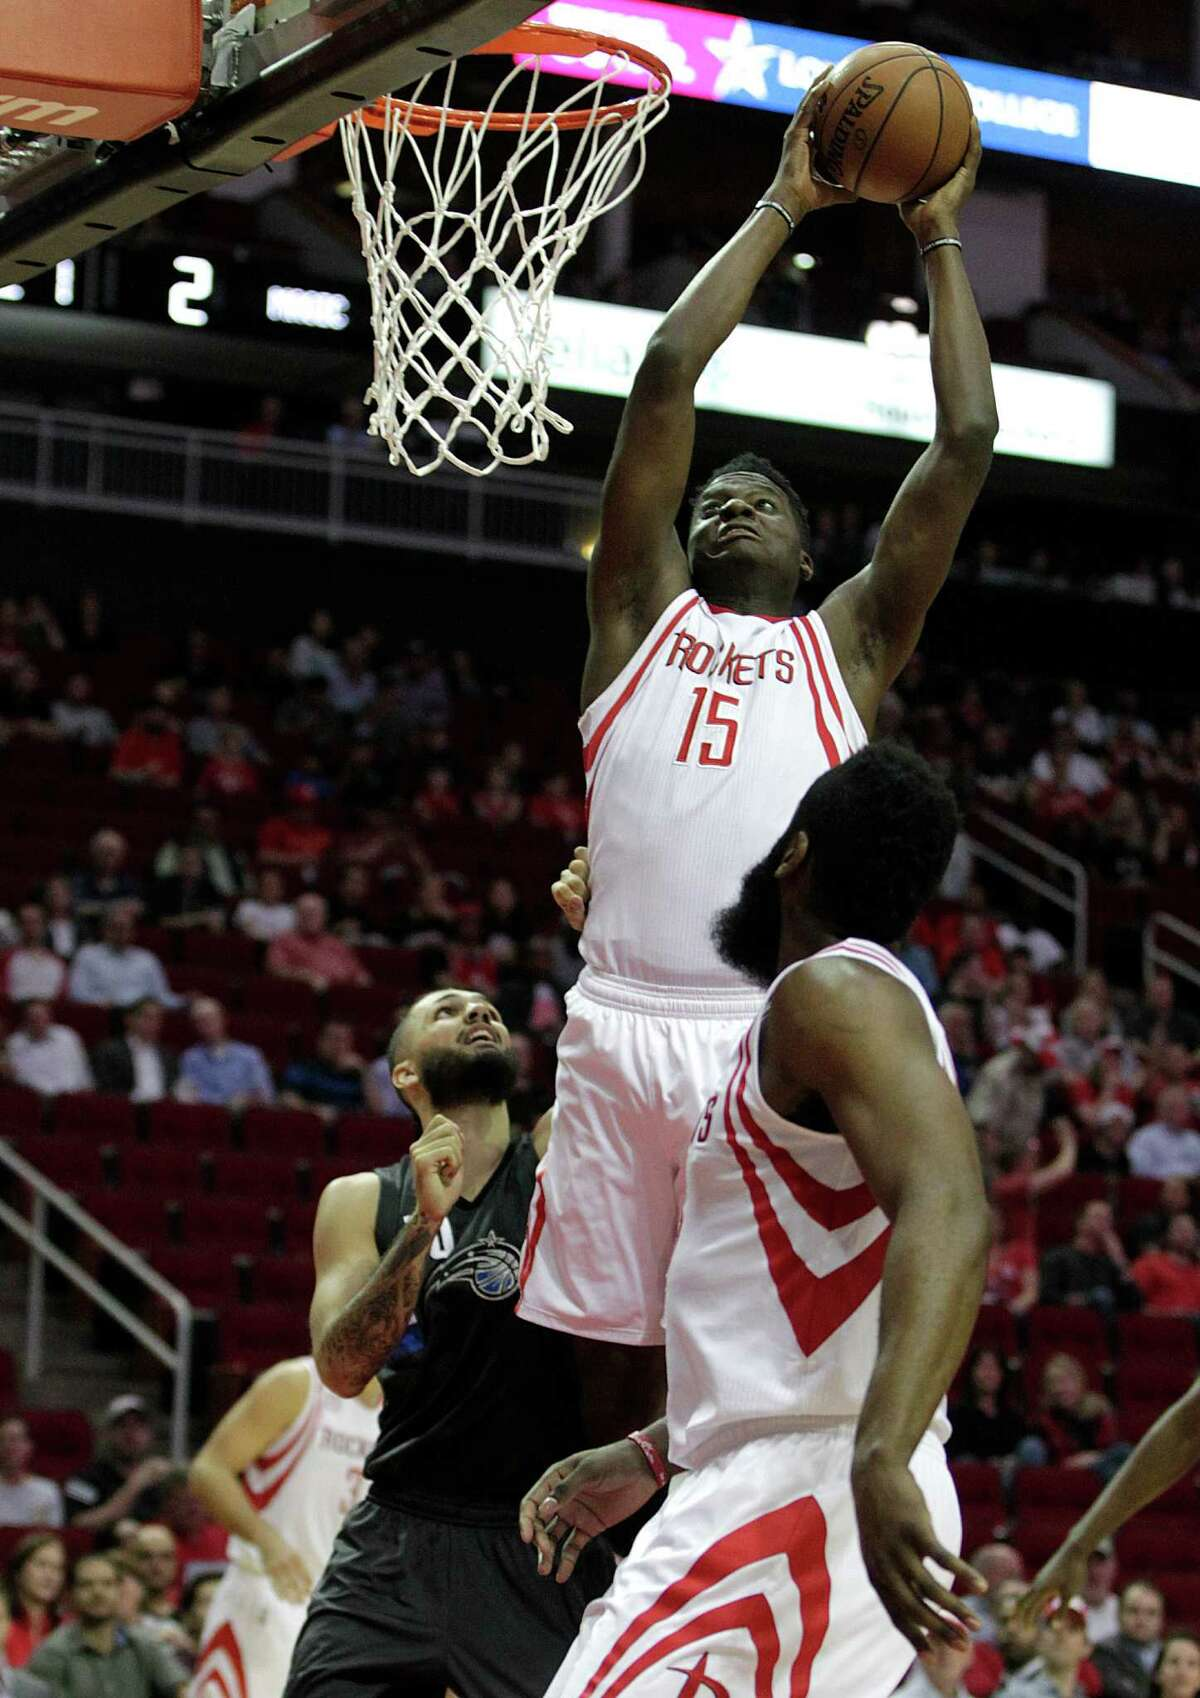 Houston Rockets center Clint Capela heads to the basket against the Orlando Magicduring first half of NBA game action at Toyota Center Tuesday, Feb. 7, 2017, in Houston.